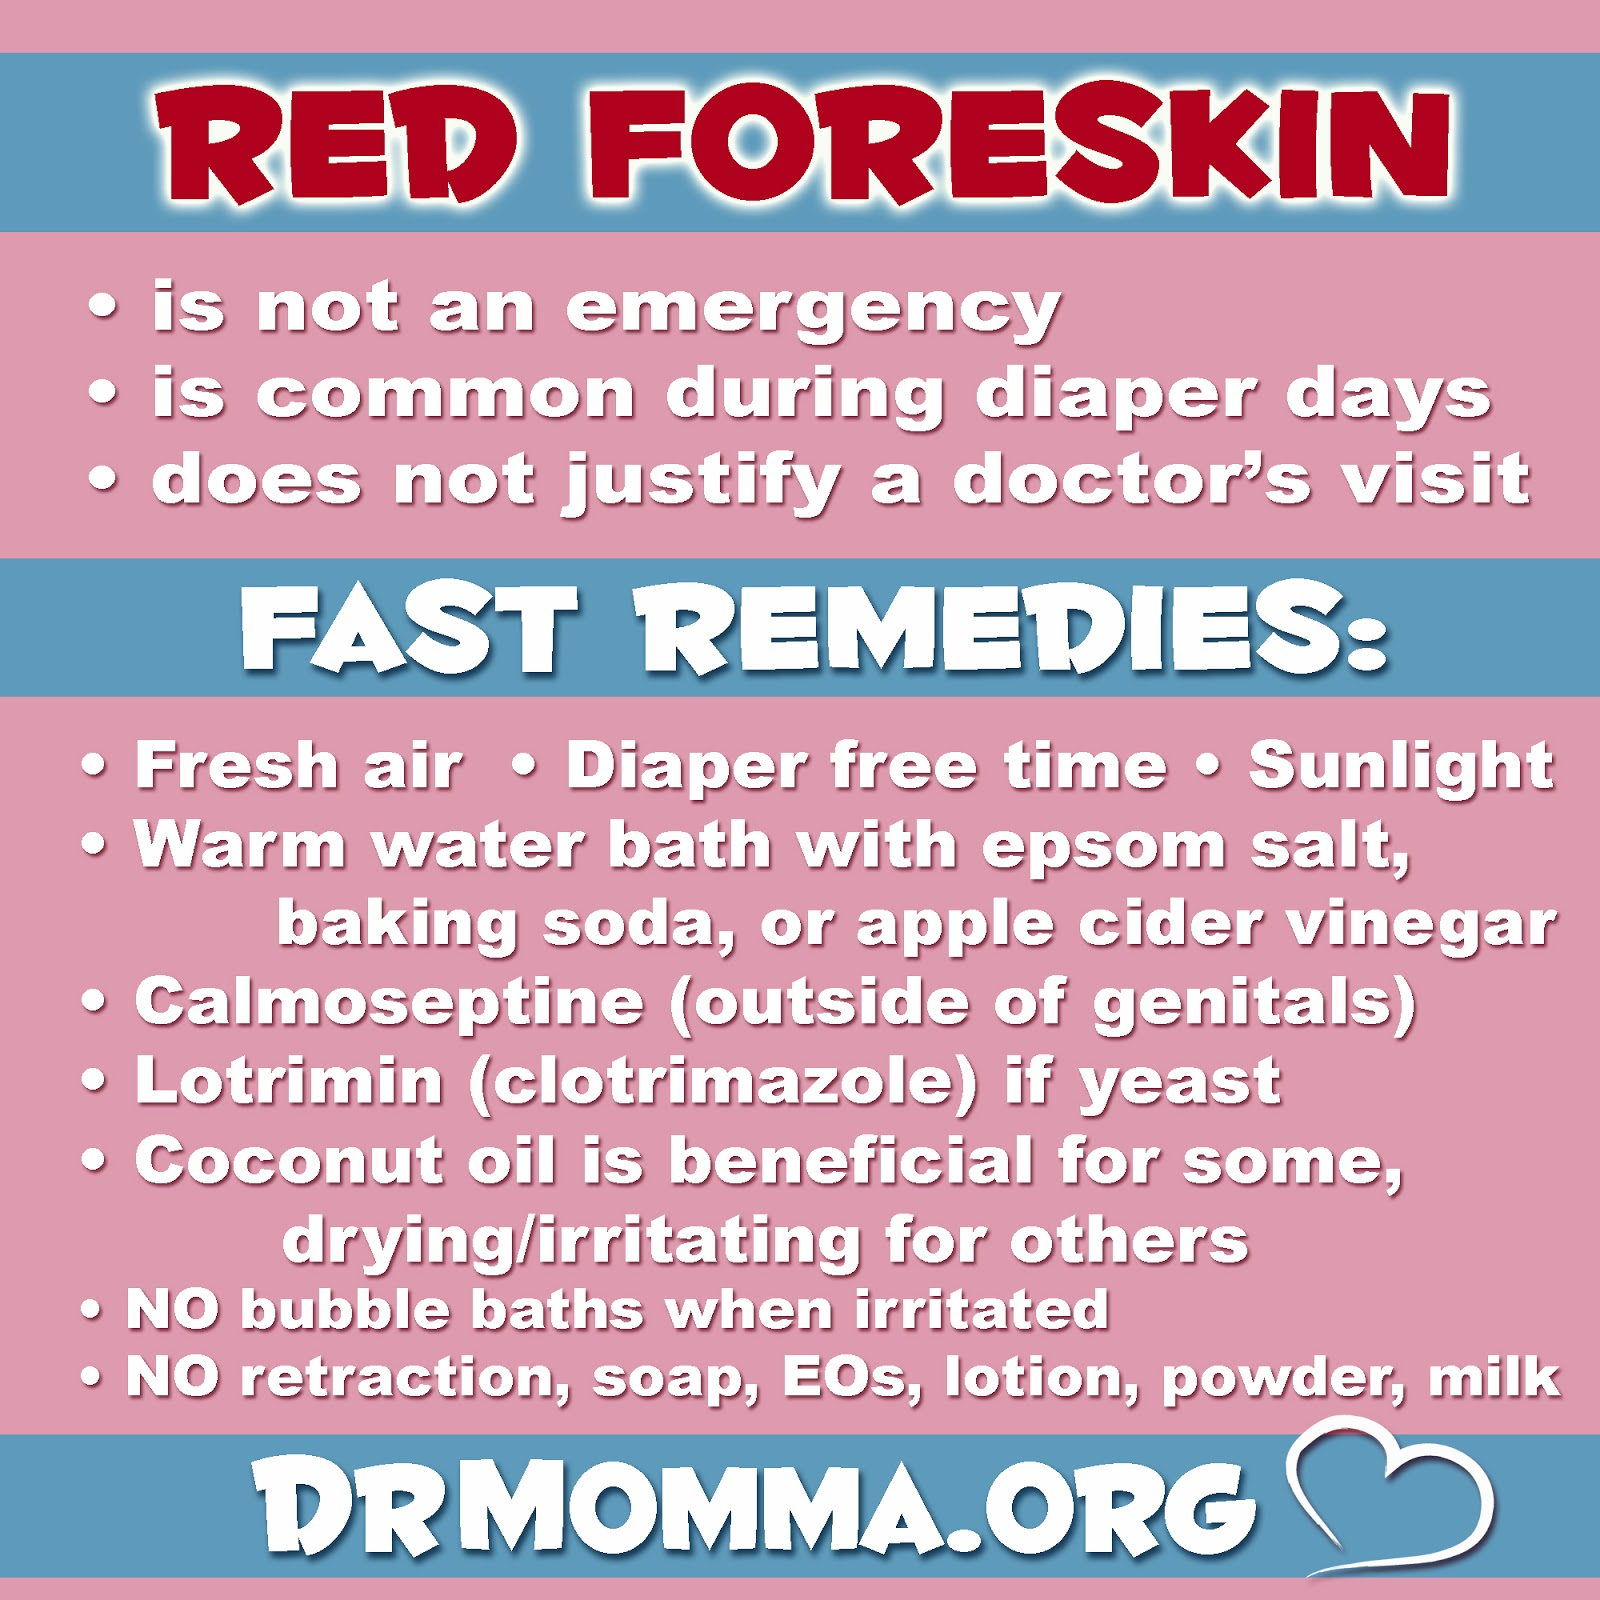 Inflammation of the foreskin in men, inflammation of the foreskin in boys